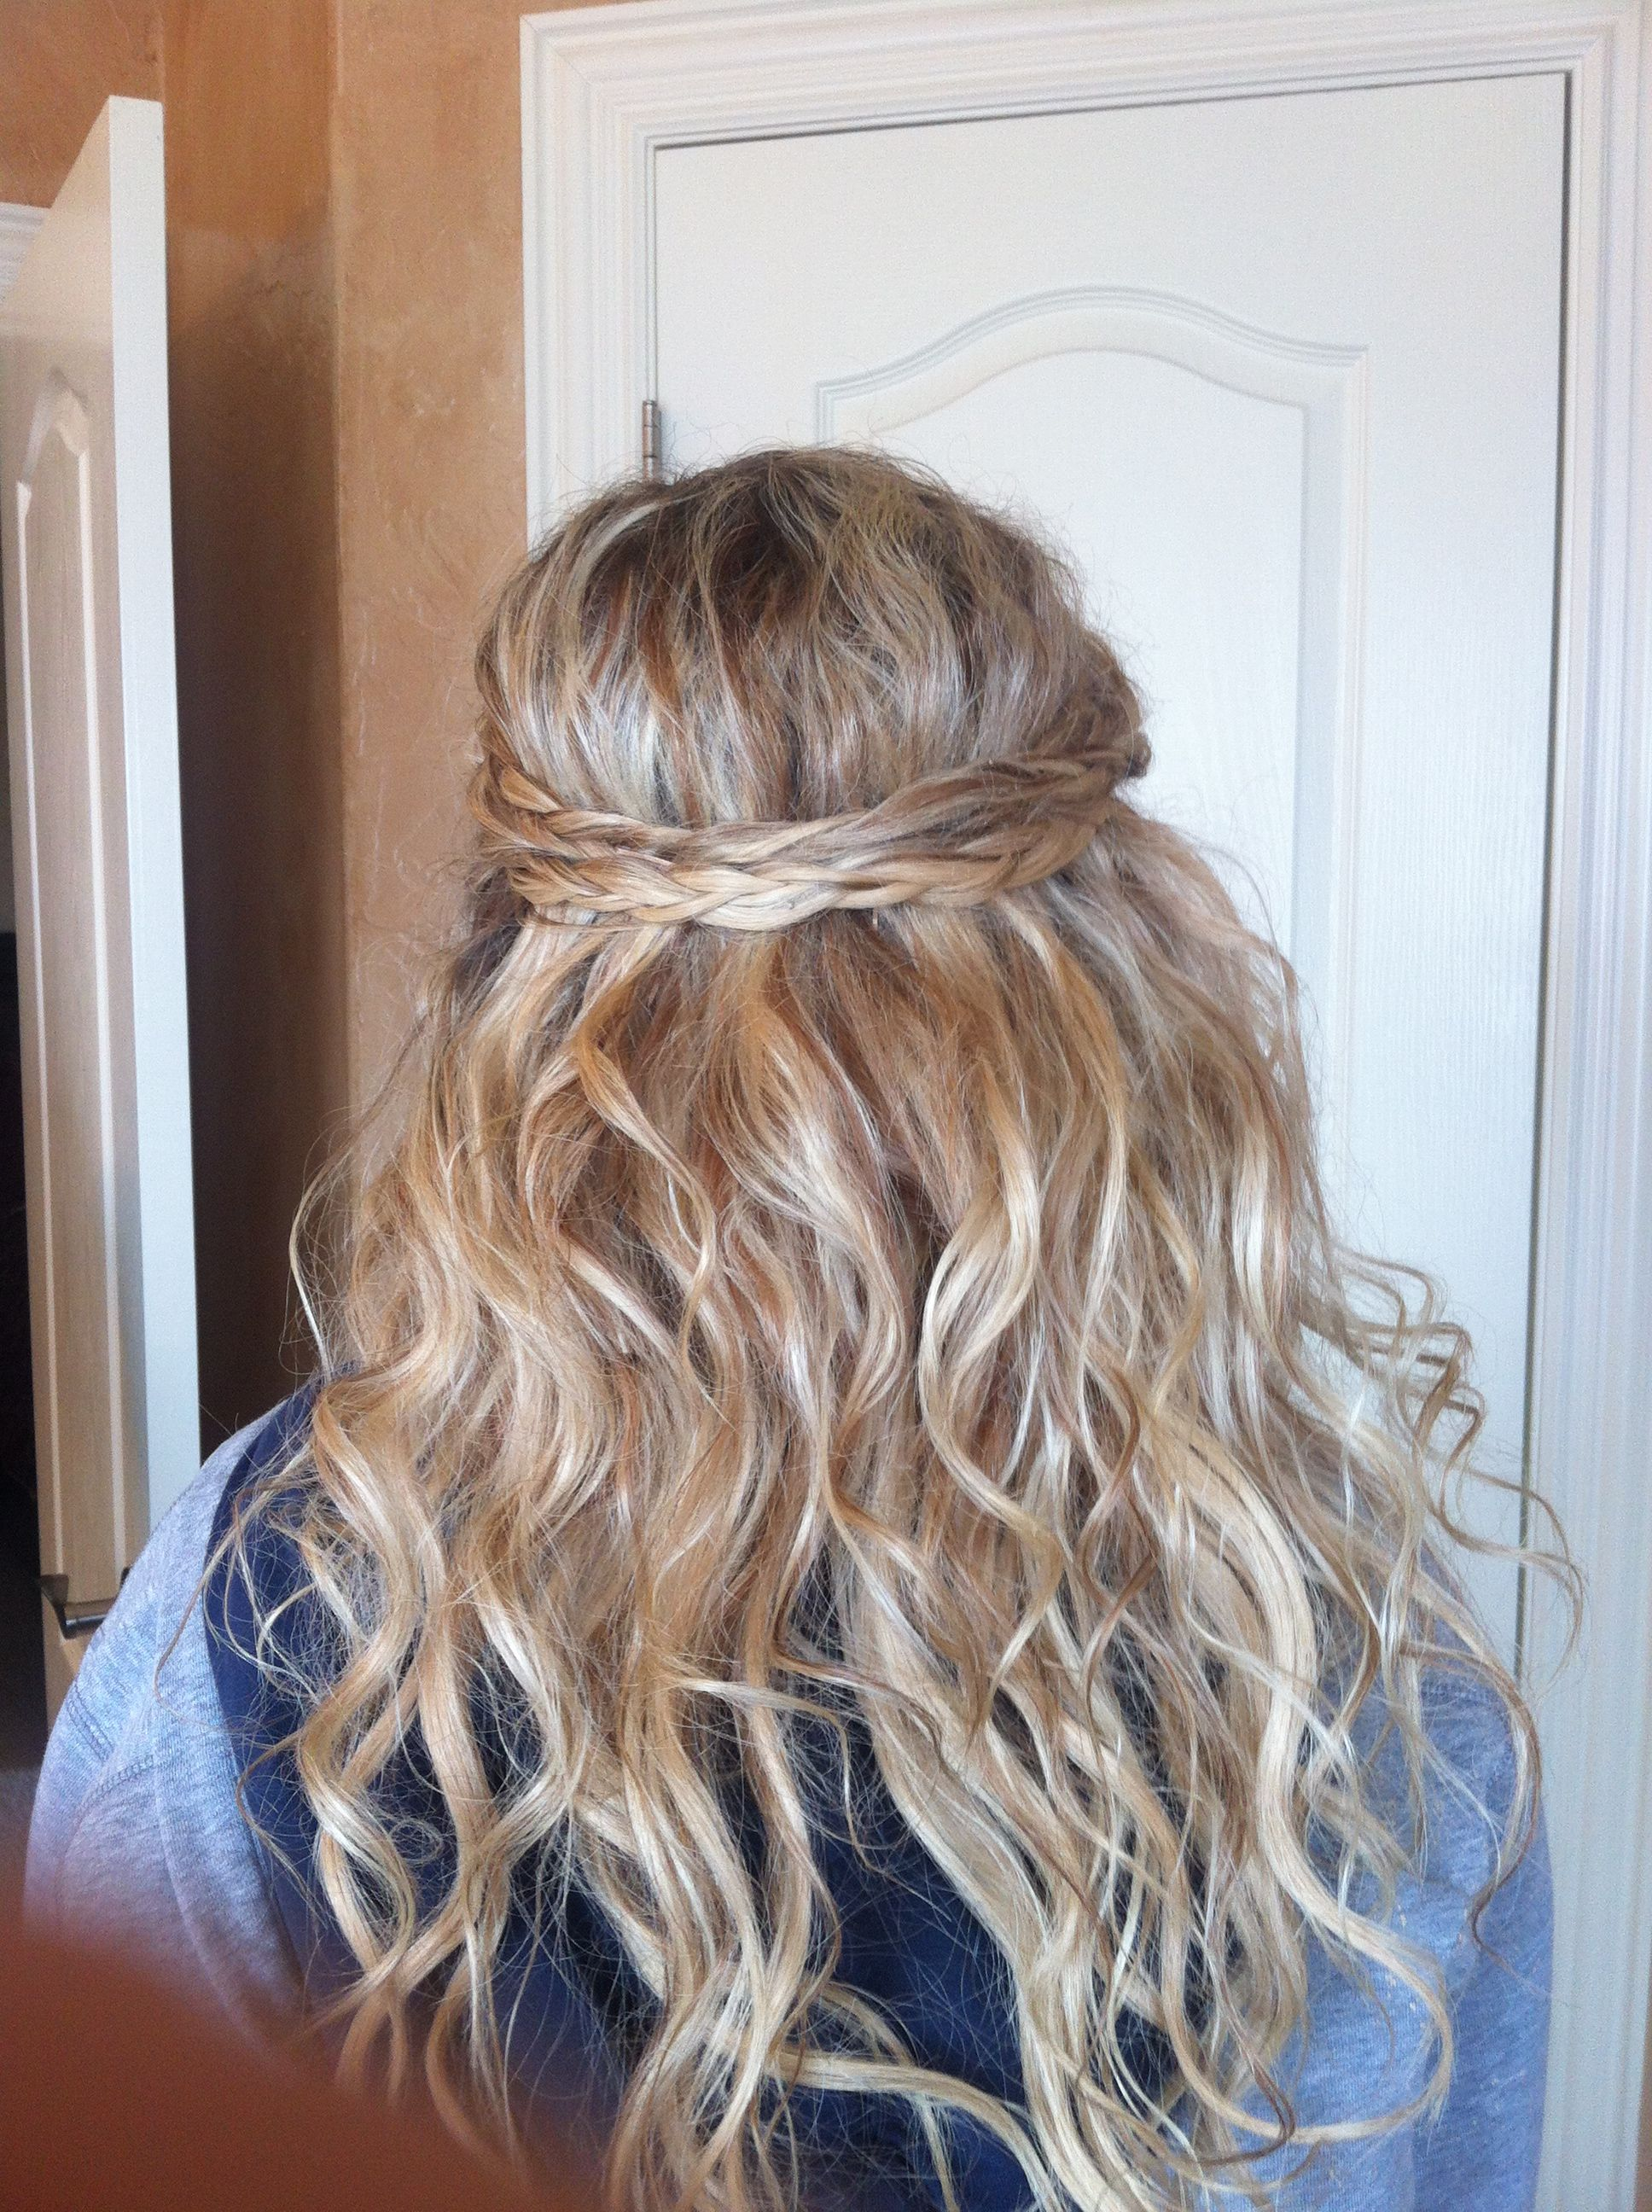 Prom hair. Half up half down with braids and extensions. | Hair | Simple prom hair, Prom hair ...